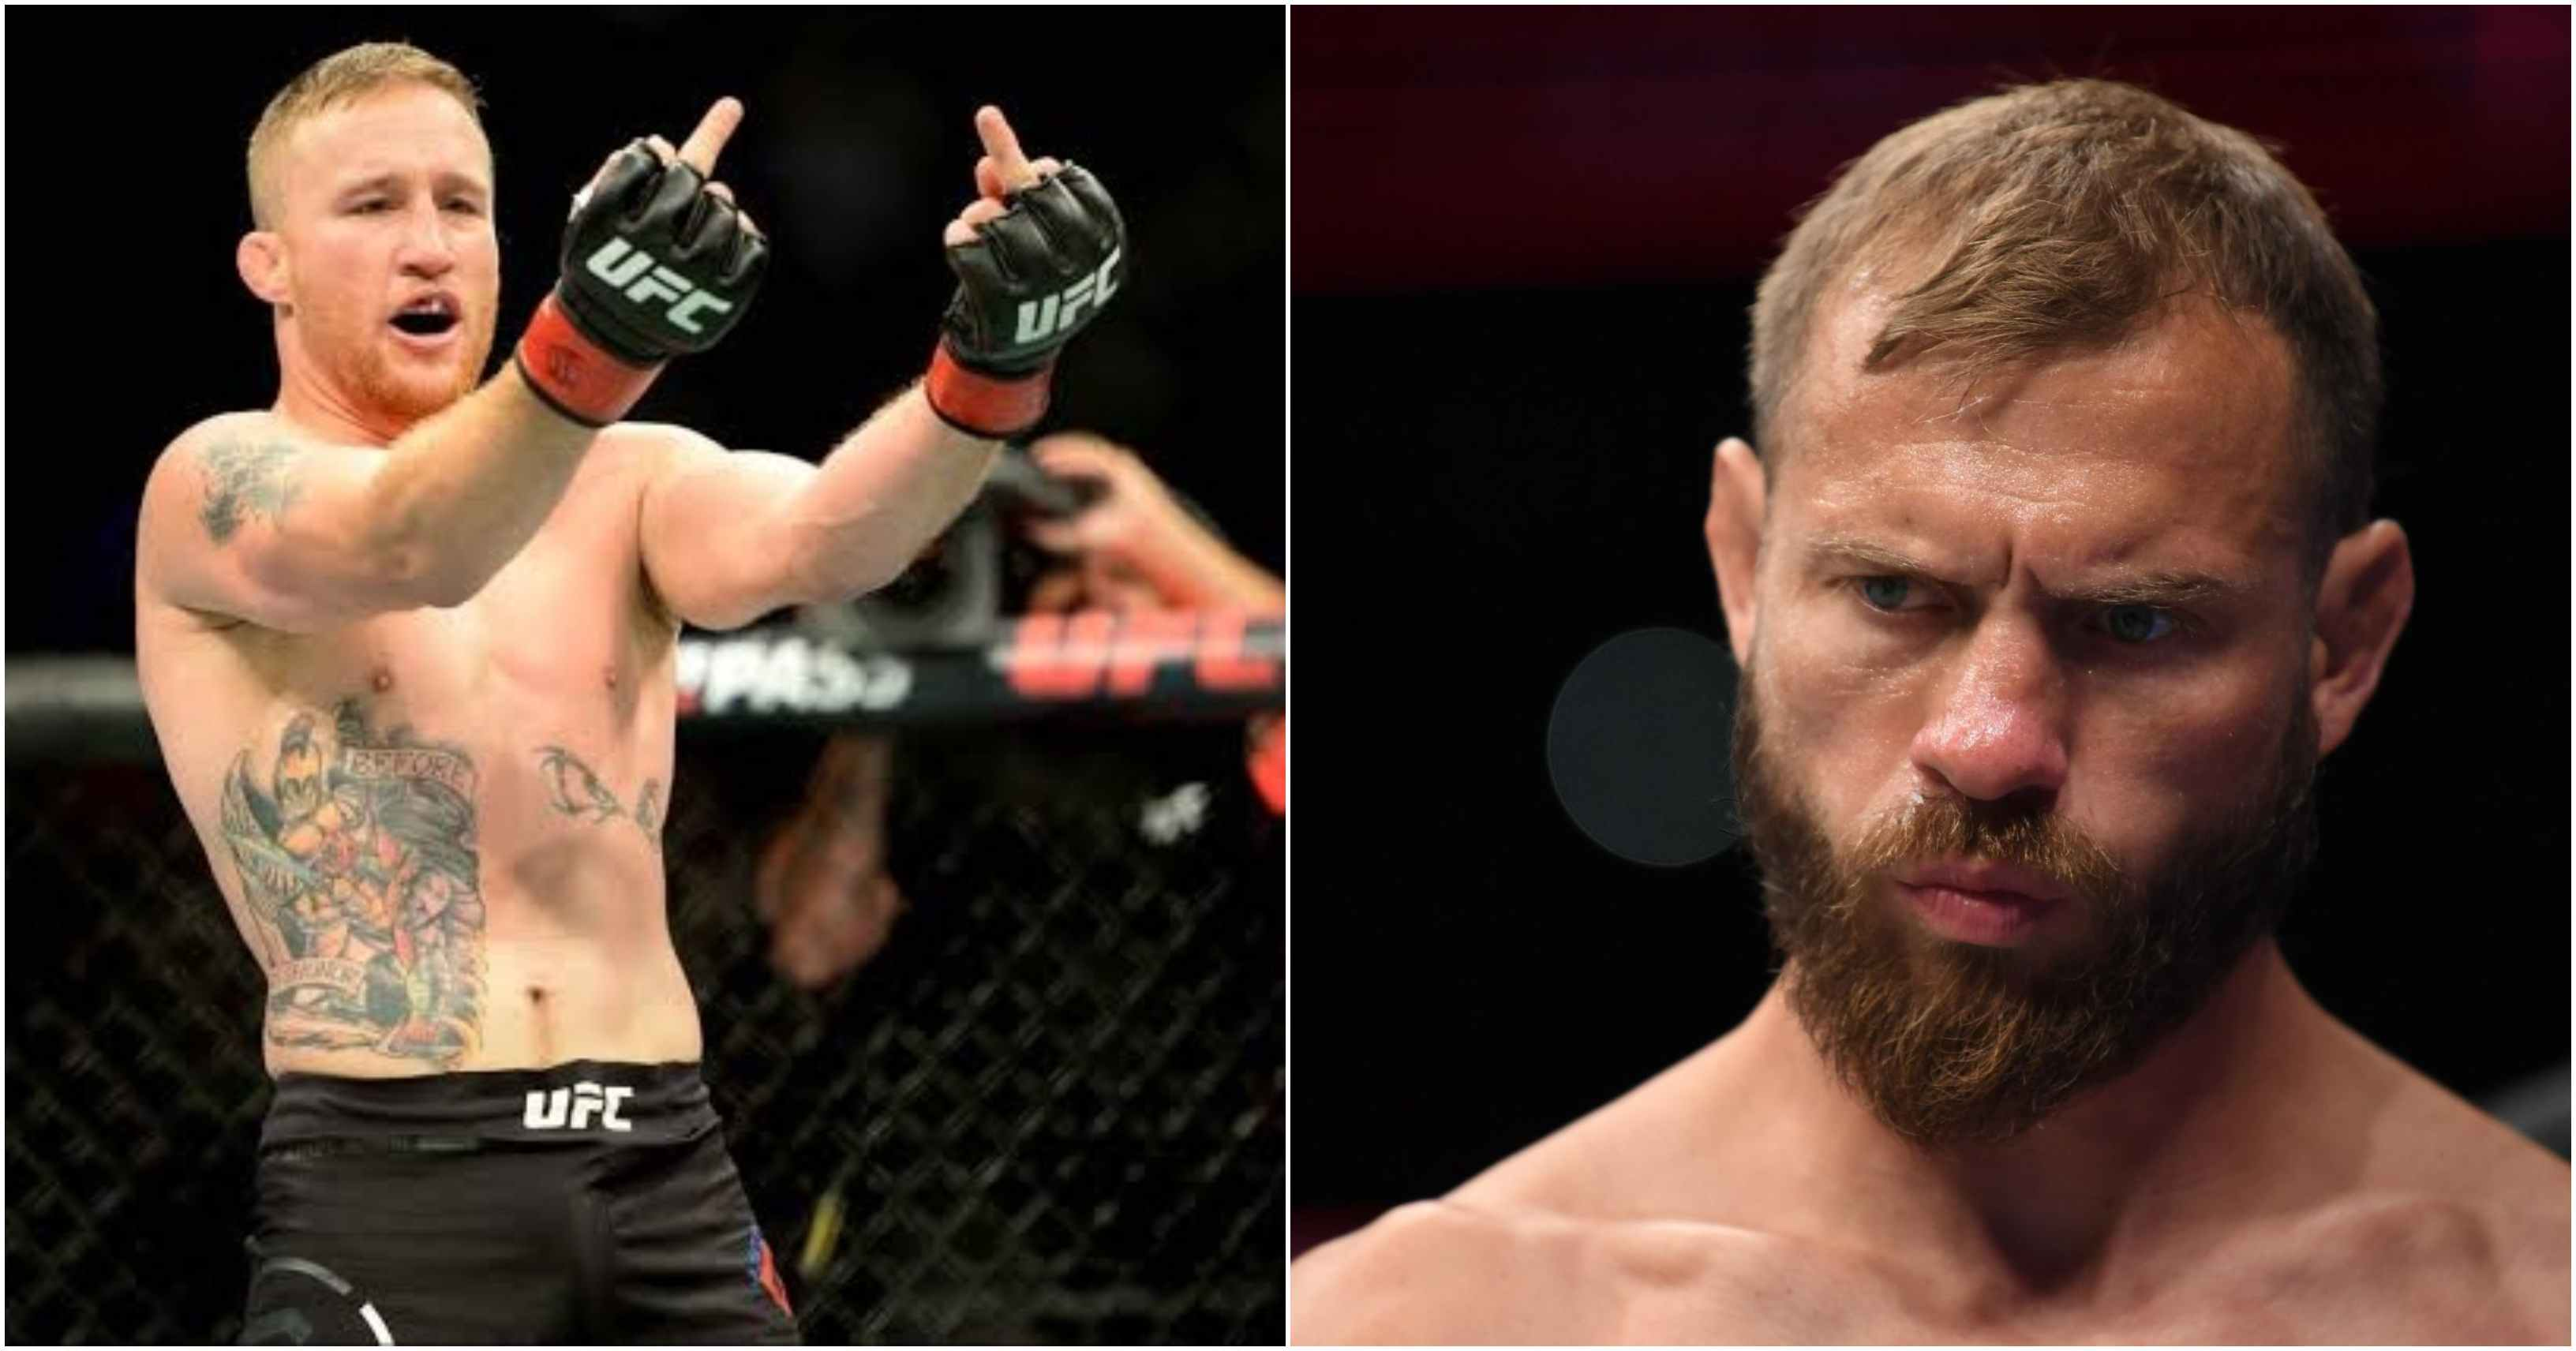 Donald Cerrone explains why Justin Gaethje is getting overlooked for a LW title shot - Donald